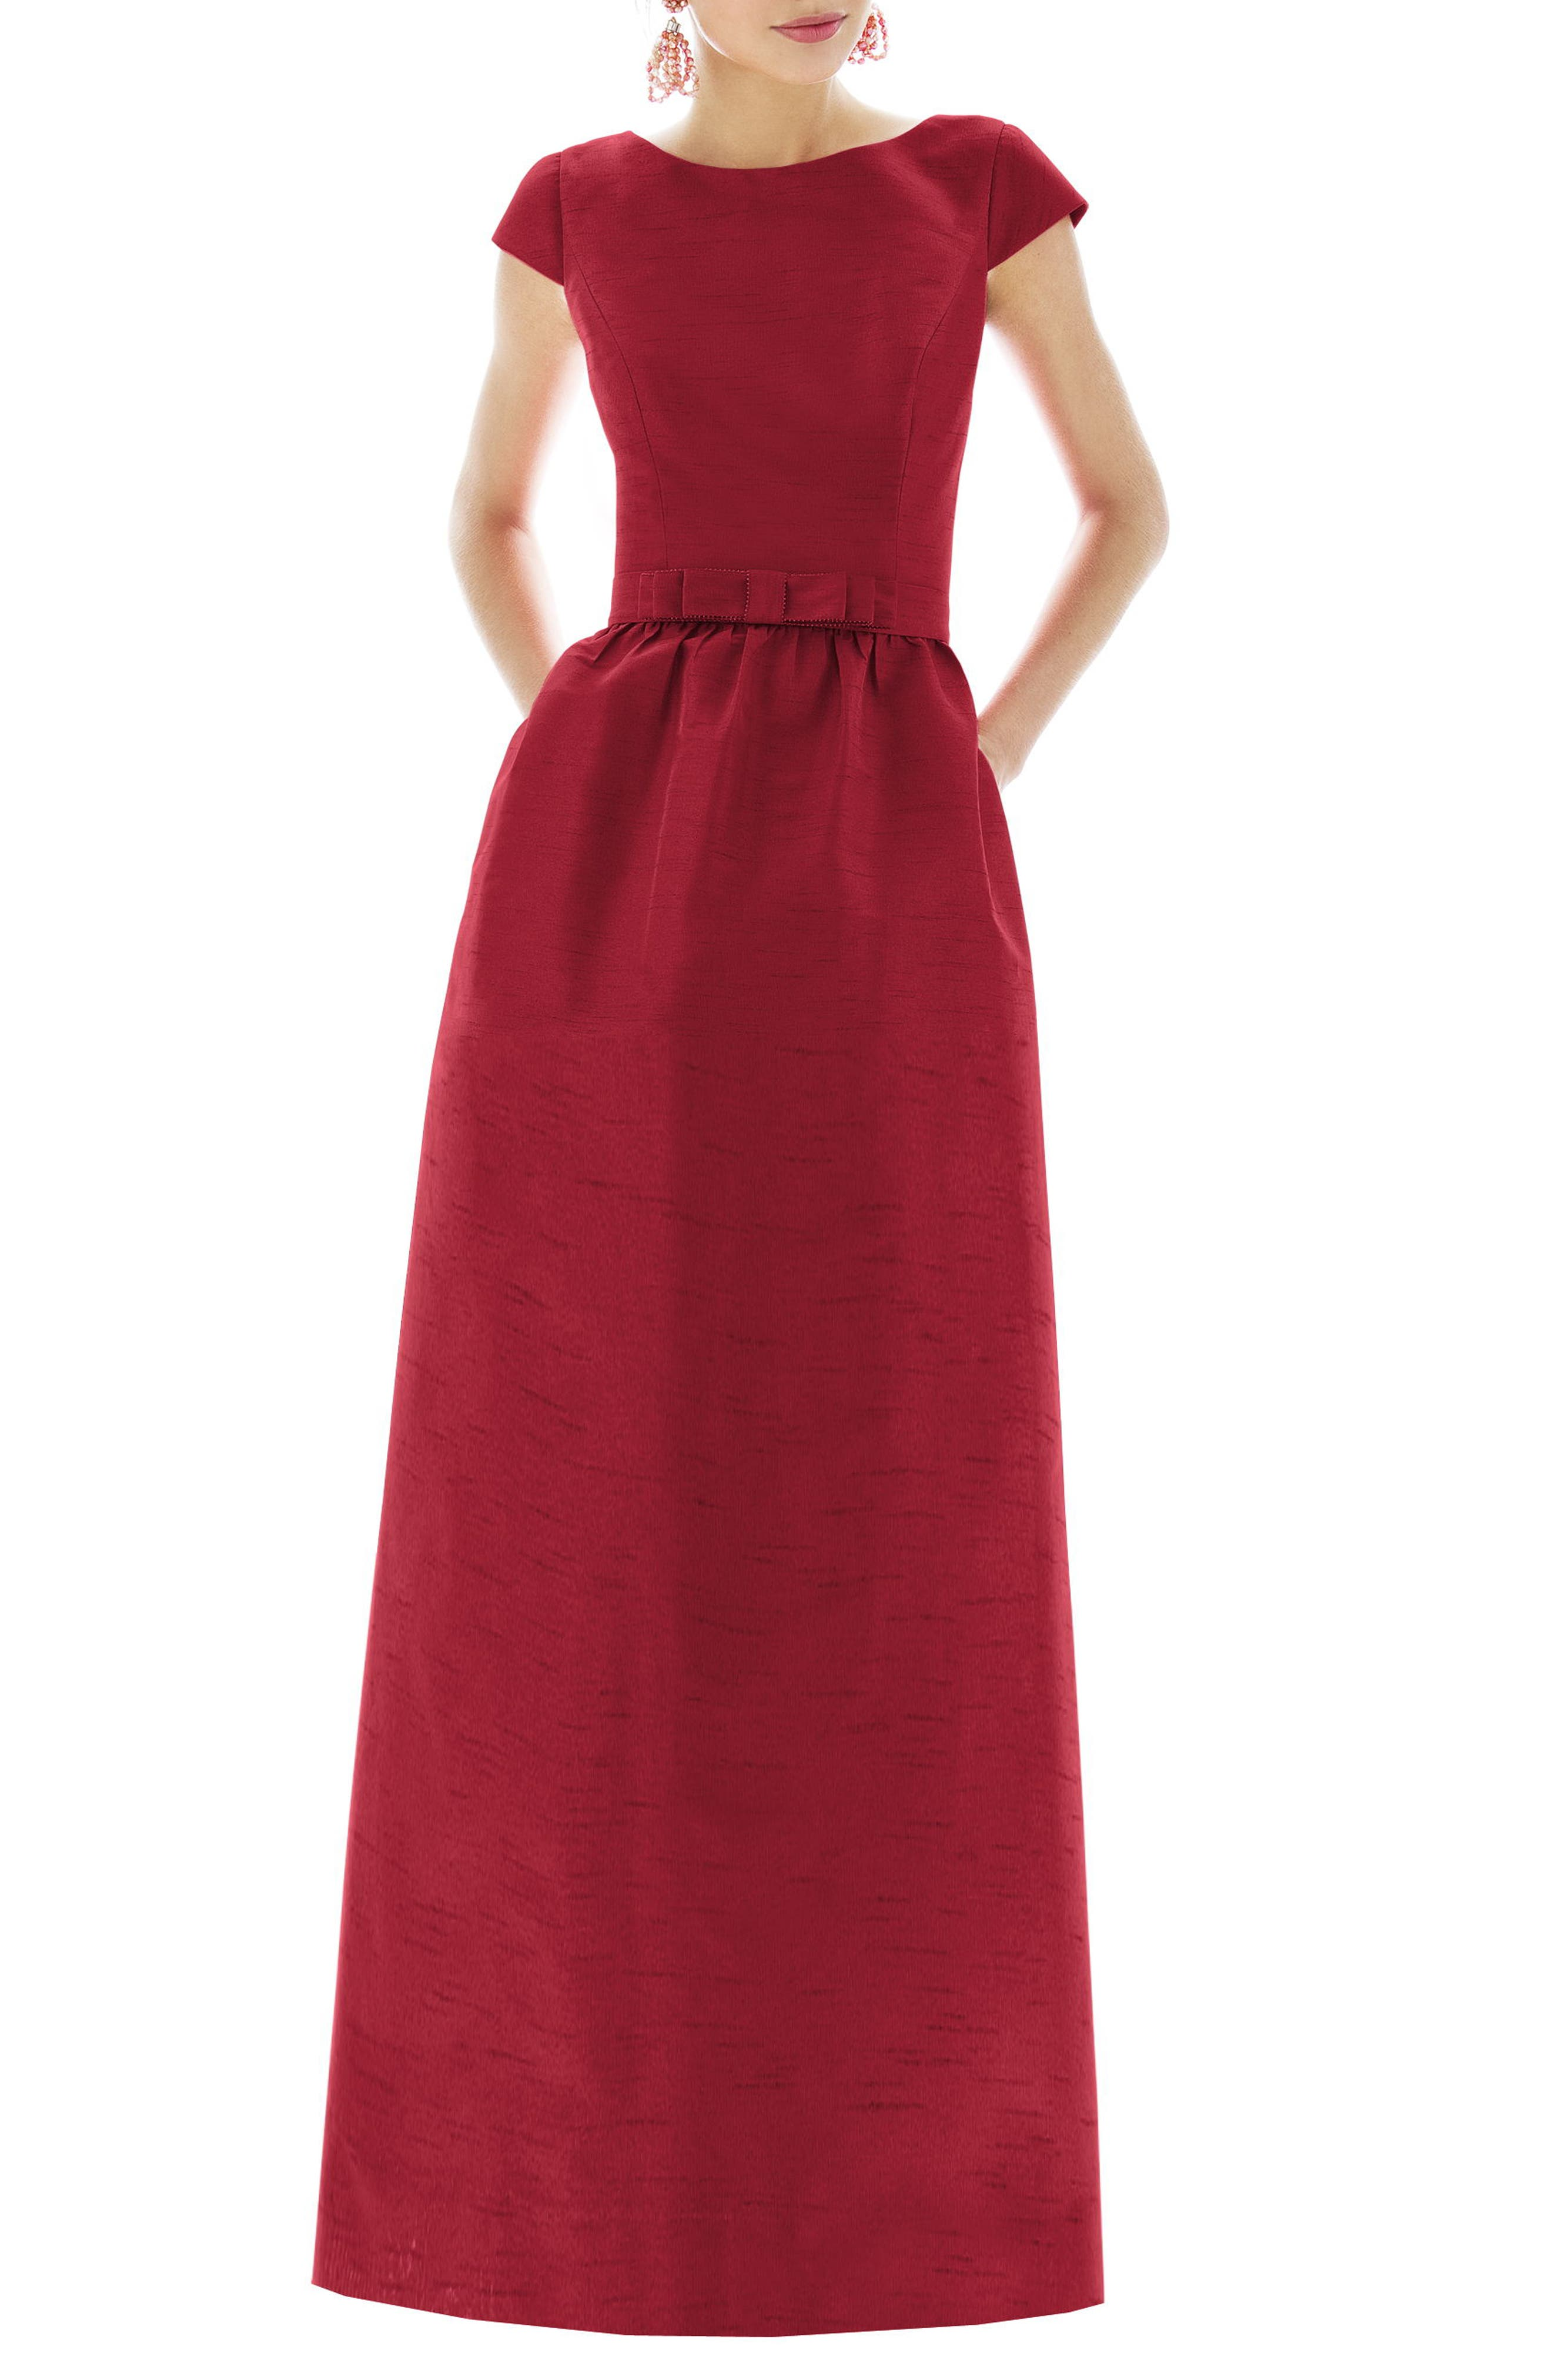 ALFRED SUNG, Cap Sleeve Dupioni Full Length Dress, Main thumbnail 1, color, BARCELONA